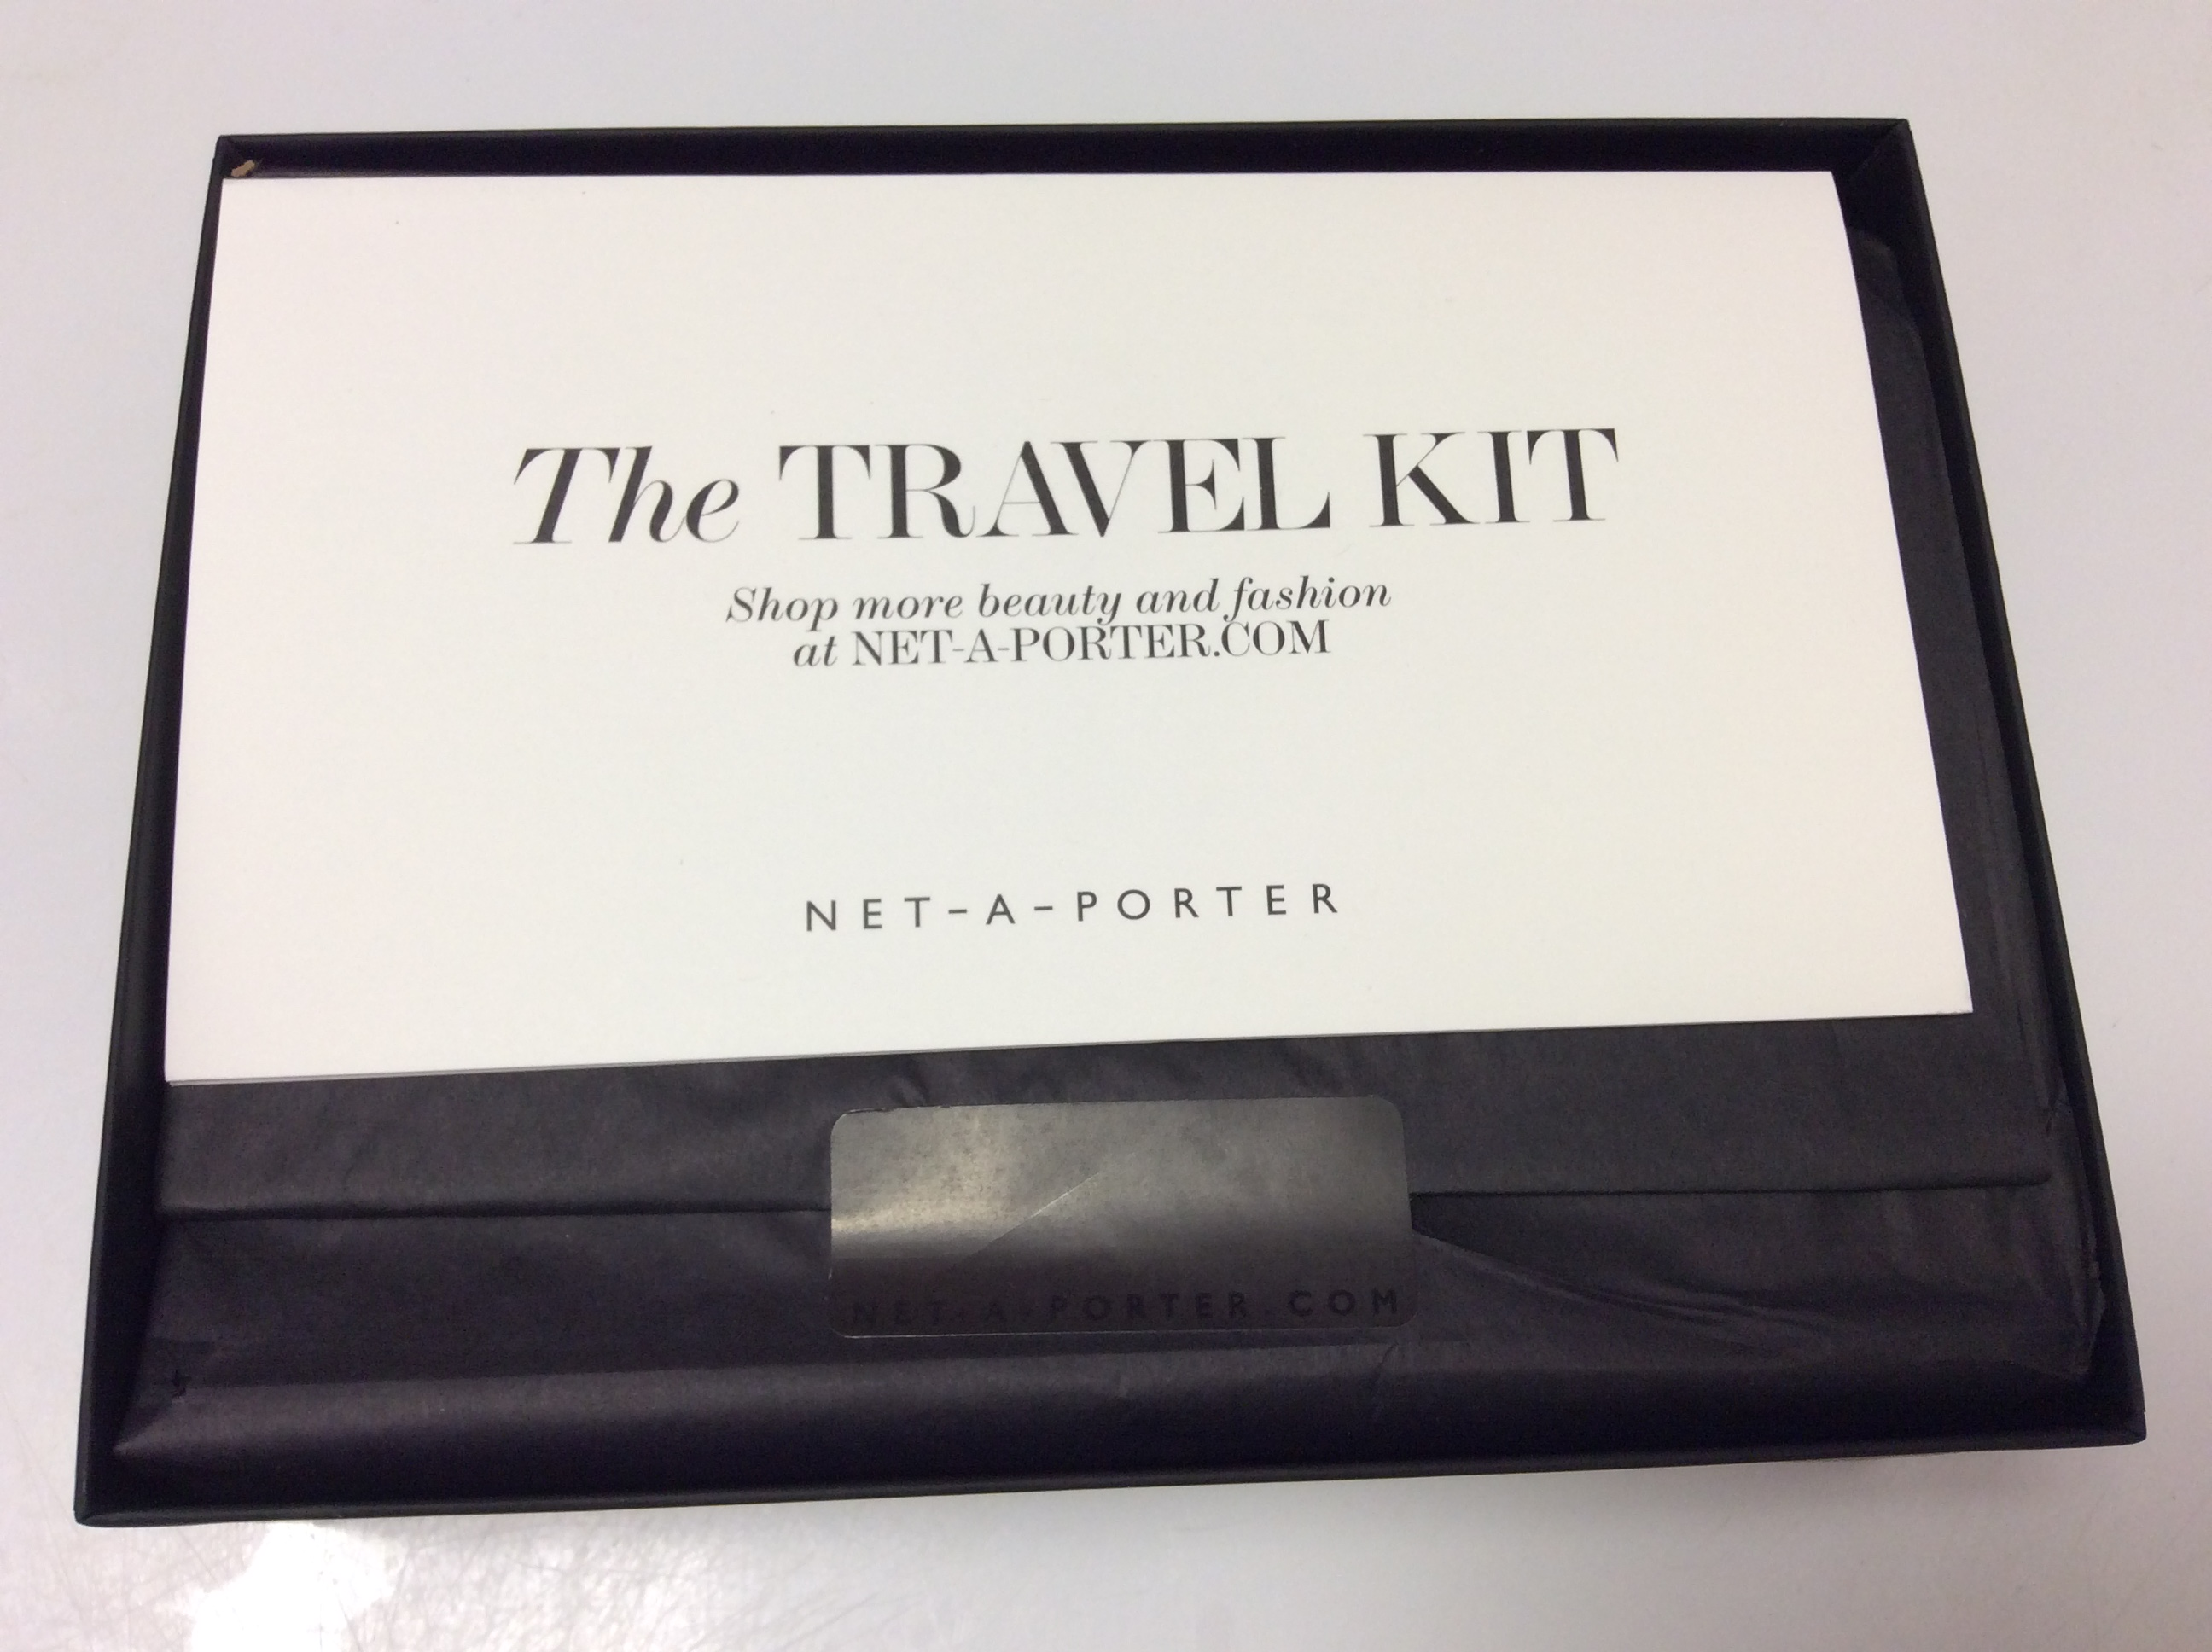 Le Meilleur Net A Porter Travel Kit Limited Edition Box Review – March Ce Mois Ci